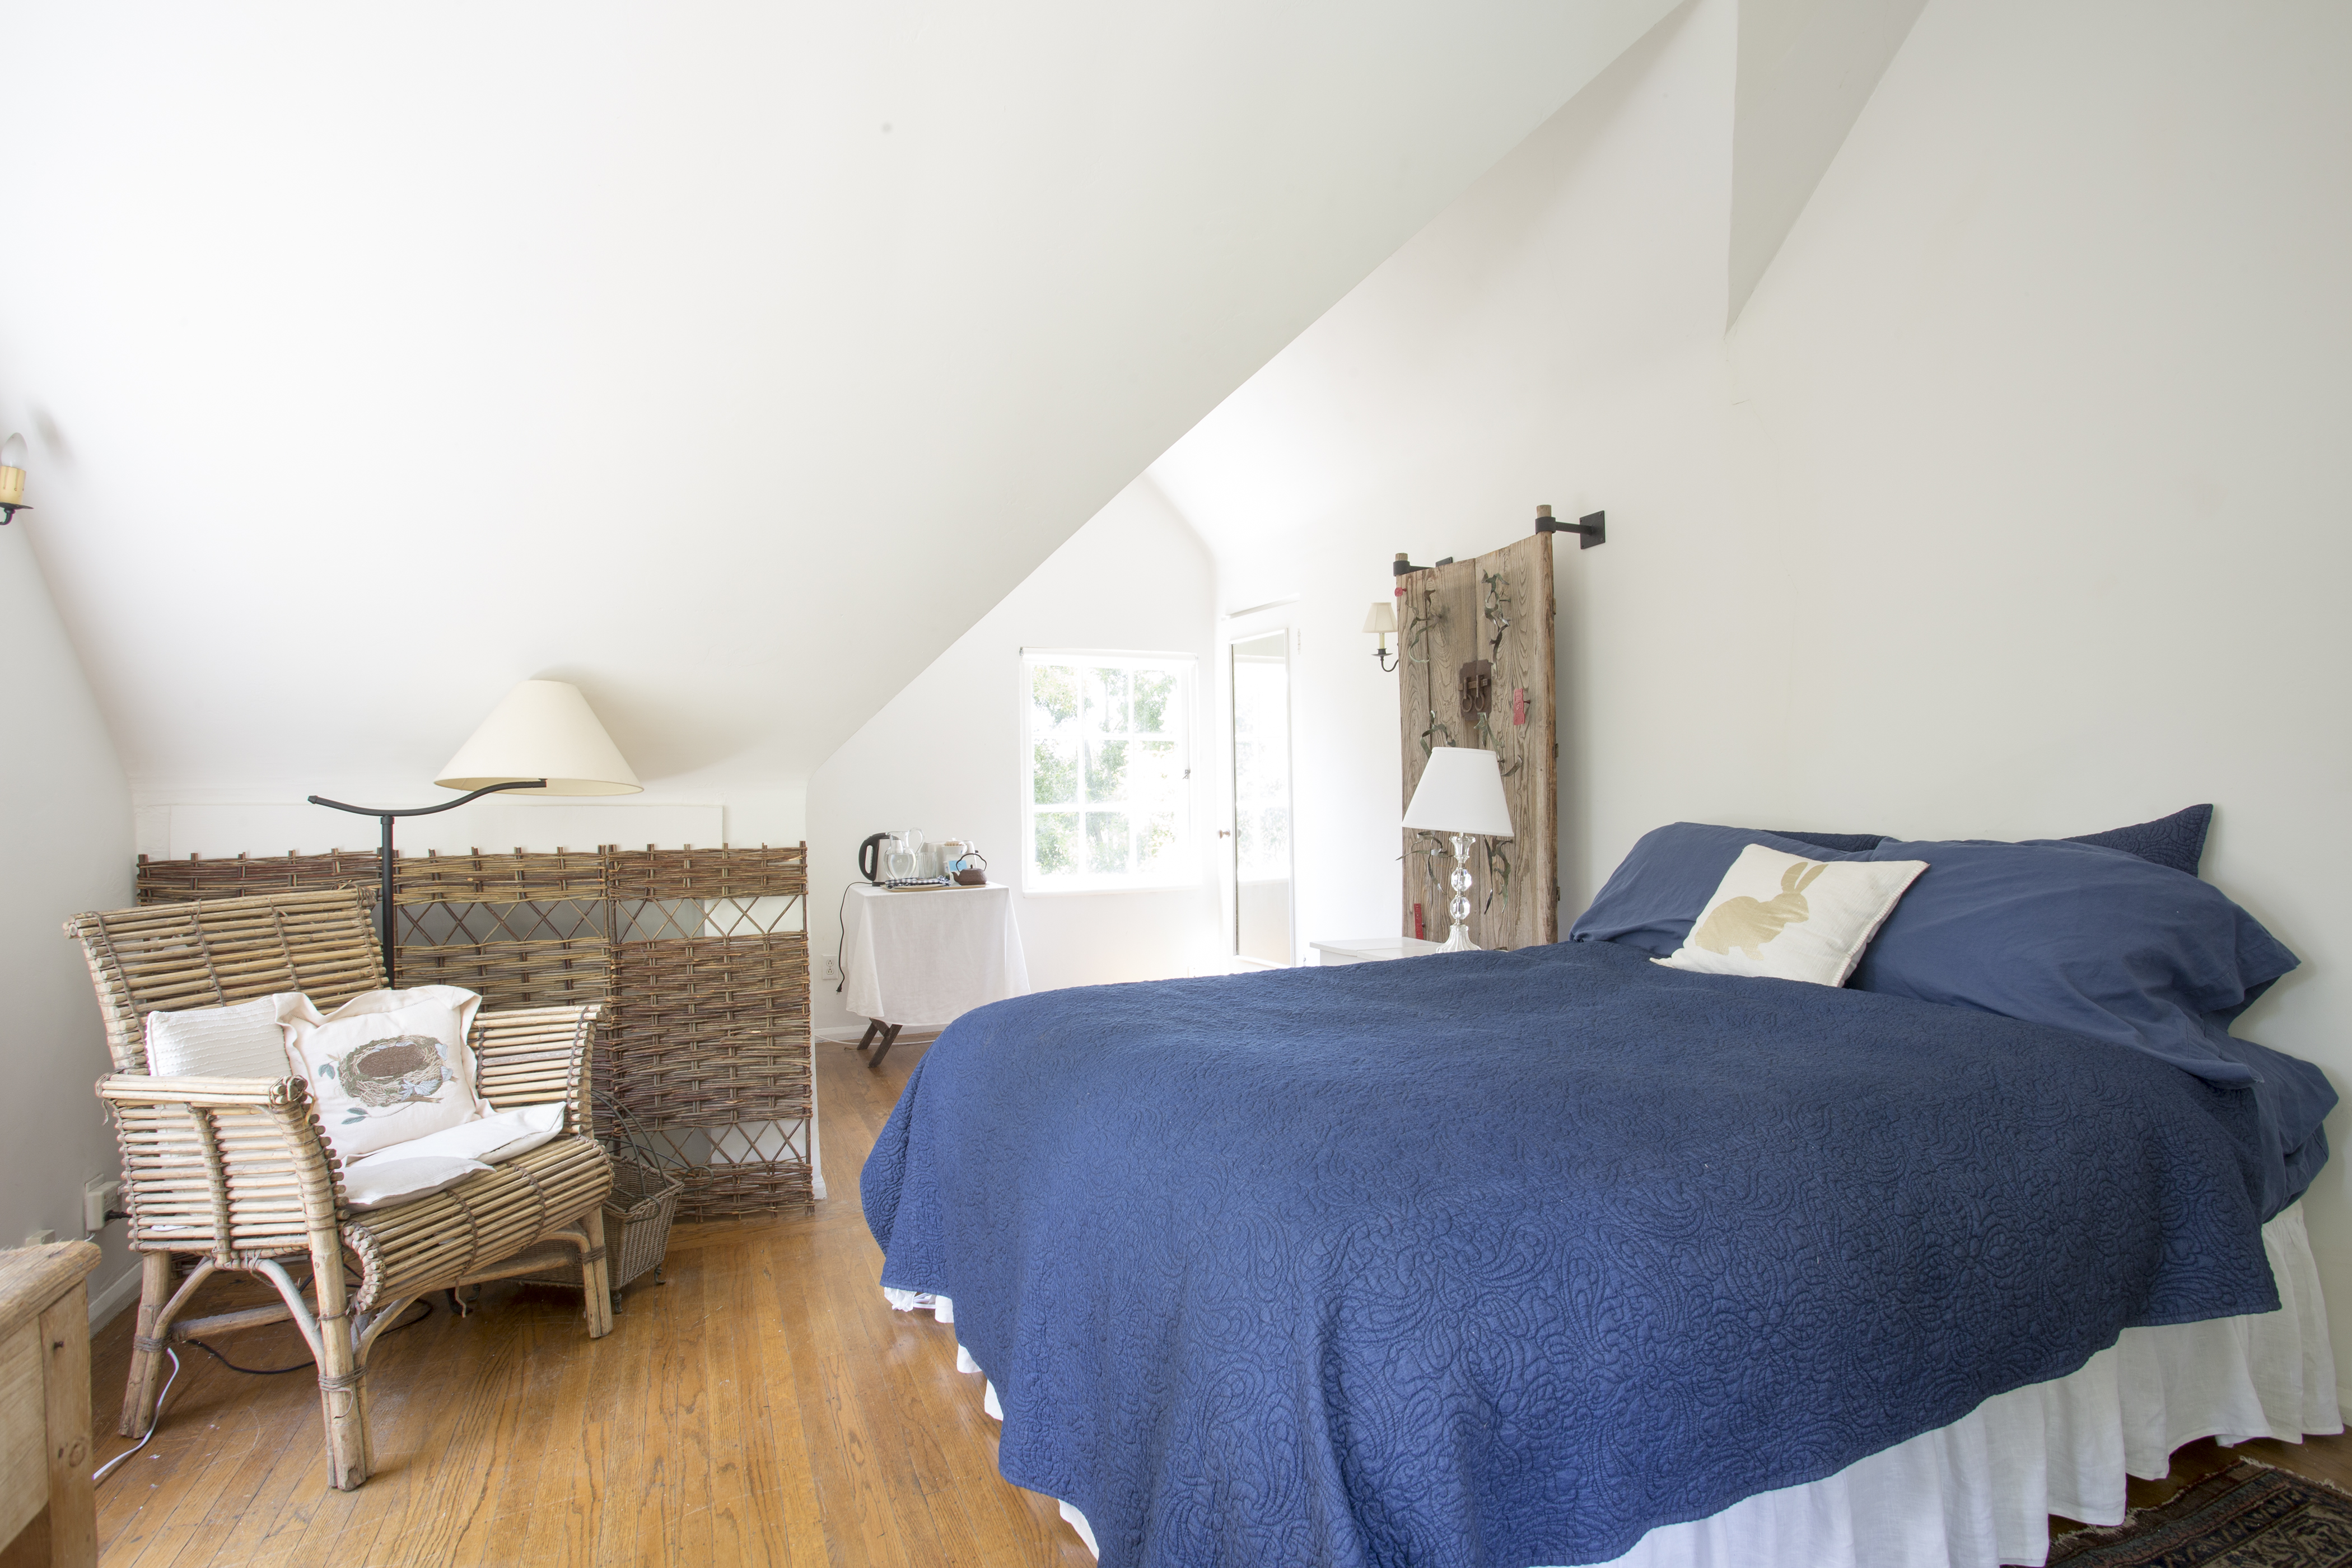 Spacious Fairytale Bedroom With Breakfast Houses For Rent In Oakland California United States